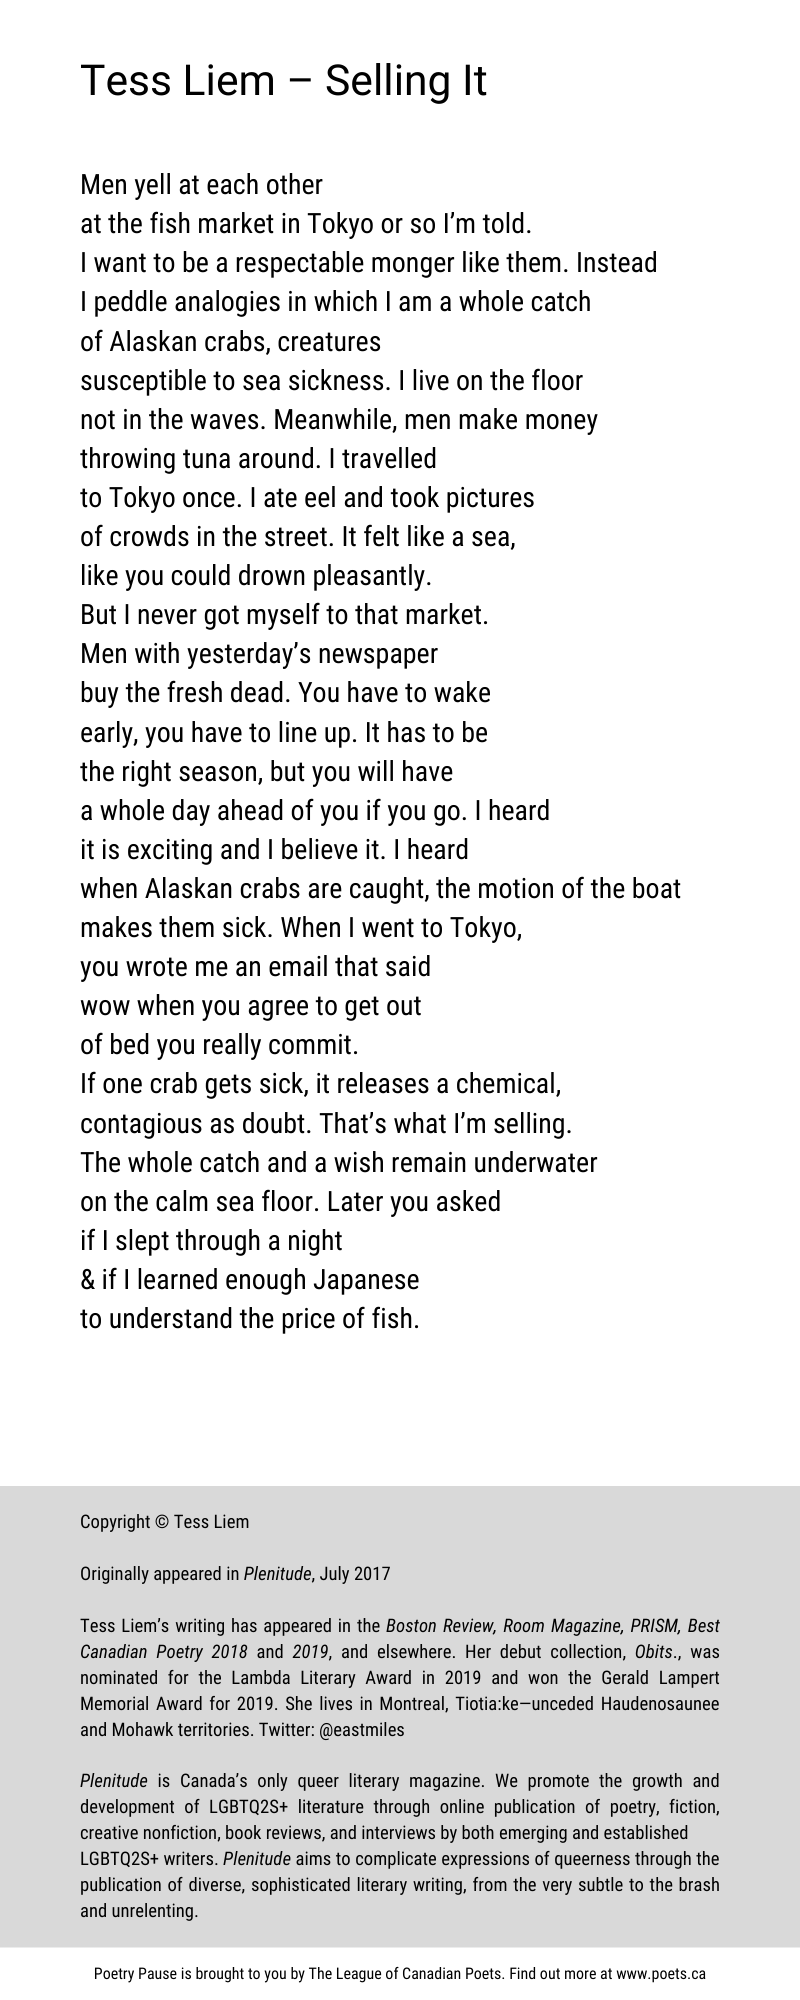 Poem Author and Title: Tess Liem – Selling It Poem: Men yell at each other at the fish market in Tokyo or so I'm told. I want to be a respectable monger like them. Instead I peddle analogies in which I am a whole catch of Alaskan crabs, creatures susceptible to sea sickness. I live on the floor not in the waves. Meanwhile, men make money throwing tuna around. I travelled to Tokyo once. I ate eel and took pictures of crowds in the street. It felt like a sea, like you could drown pleasantly. But I never got myself to that market. Men with yesterday's newspaper buy the fresh dead. You have to wake early, you have to line up. It has to be the right season, but you will have a whole day ahead of you if you go. I heard it is exciting and I believe it. I heard when Alaskan crabs are caught, the motion of the boat makes them sick. When I went to Tokyo, you wrote me an email that said wow when you agree to get out of bed you really commit. If one crab gets sick, it releases a chemical, contagious as doubt. That's what I'm selling. The whole catch and a wish remain underwater on the calm sea floor. Later you asked if I slept through a night & if I learned enough Japanese to understand the price of fish. End of Poem. Copyright Tess Liem Originally appeared in Plenitude, July 2017 Tess Liem's writing has appeared in the Boston Review, Room Magazine, PRISM, Best Canadian Poetry 2018 and 2019, and elsewhere. Her debut collection, Obits., was nominated for the Lambda Literary Award in 2019 and won the Gerald Lampert Memorial Award for 2019. She lives in Montreal, Tiotia:ke—unceded Haudenosaunee and Mohawk territories. Twitter handle: @eastmiles Plenitude is Canada's only queer literary magazine. We promote the growth and development of LGBTQ2S+ literature through online publication of poetry, fiction, creative nonfiction, book reviews, and interviews by both emerging and established LGBTQ2S+ writers. Plenitude aims to complicate expressions of queerness through the publication of 